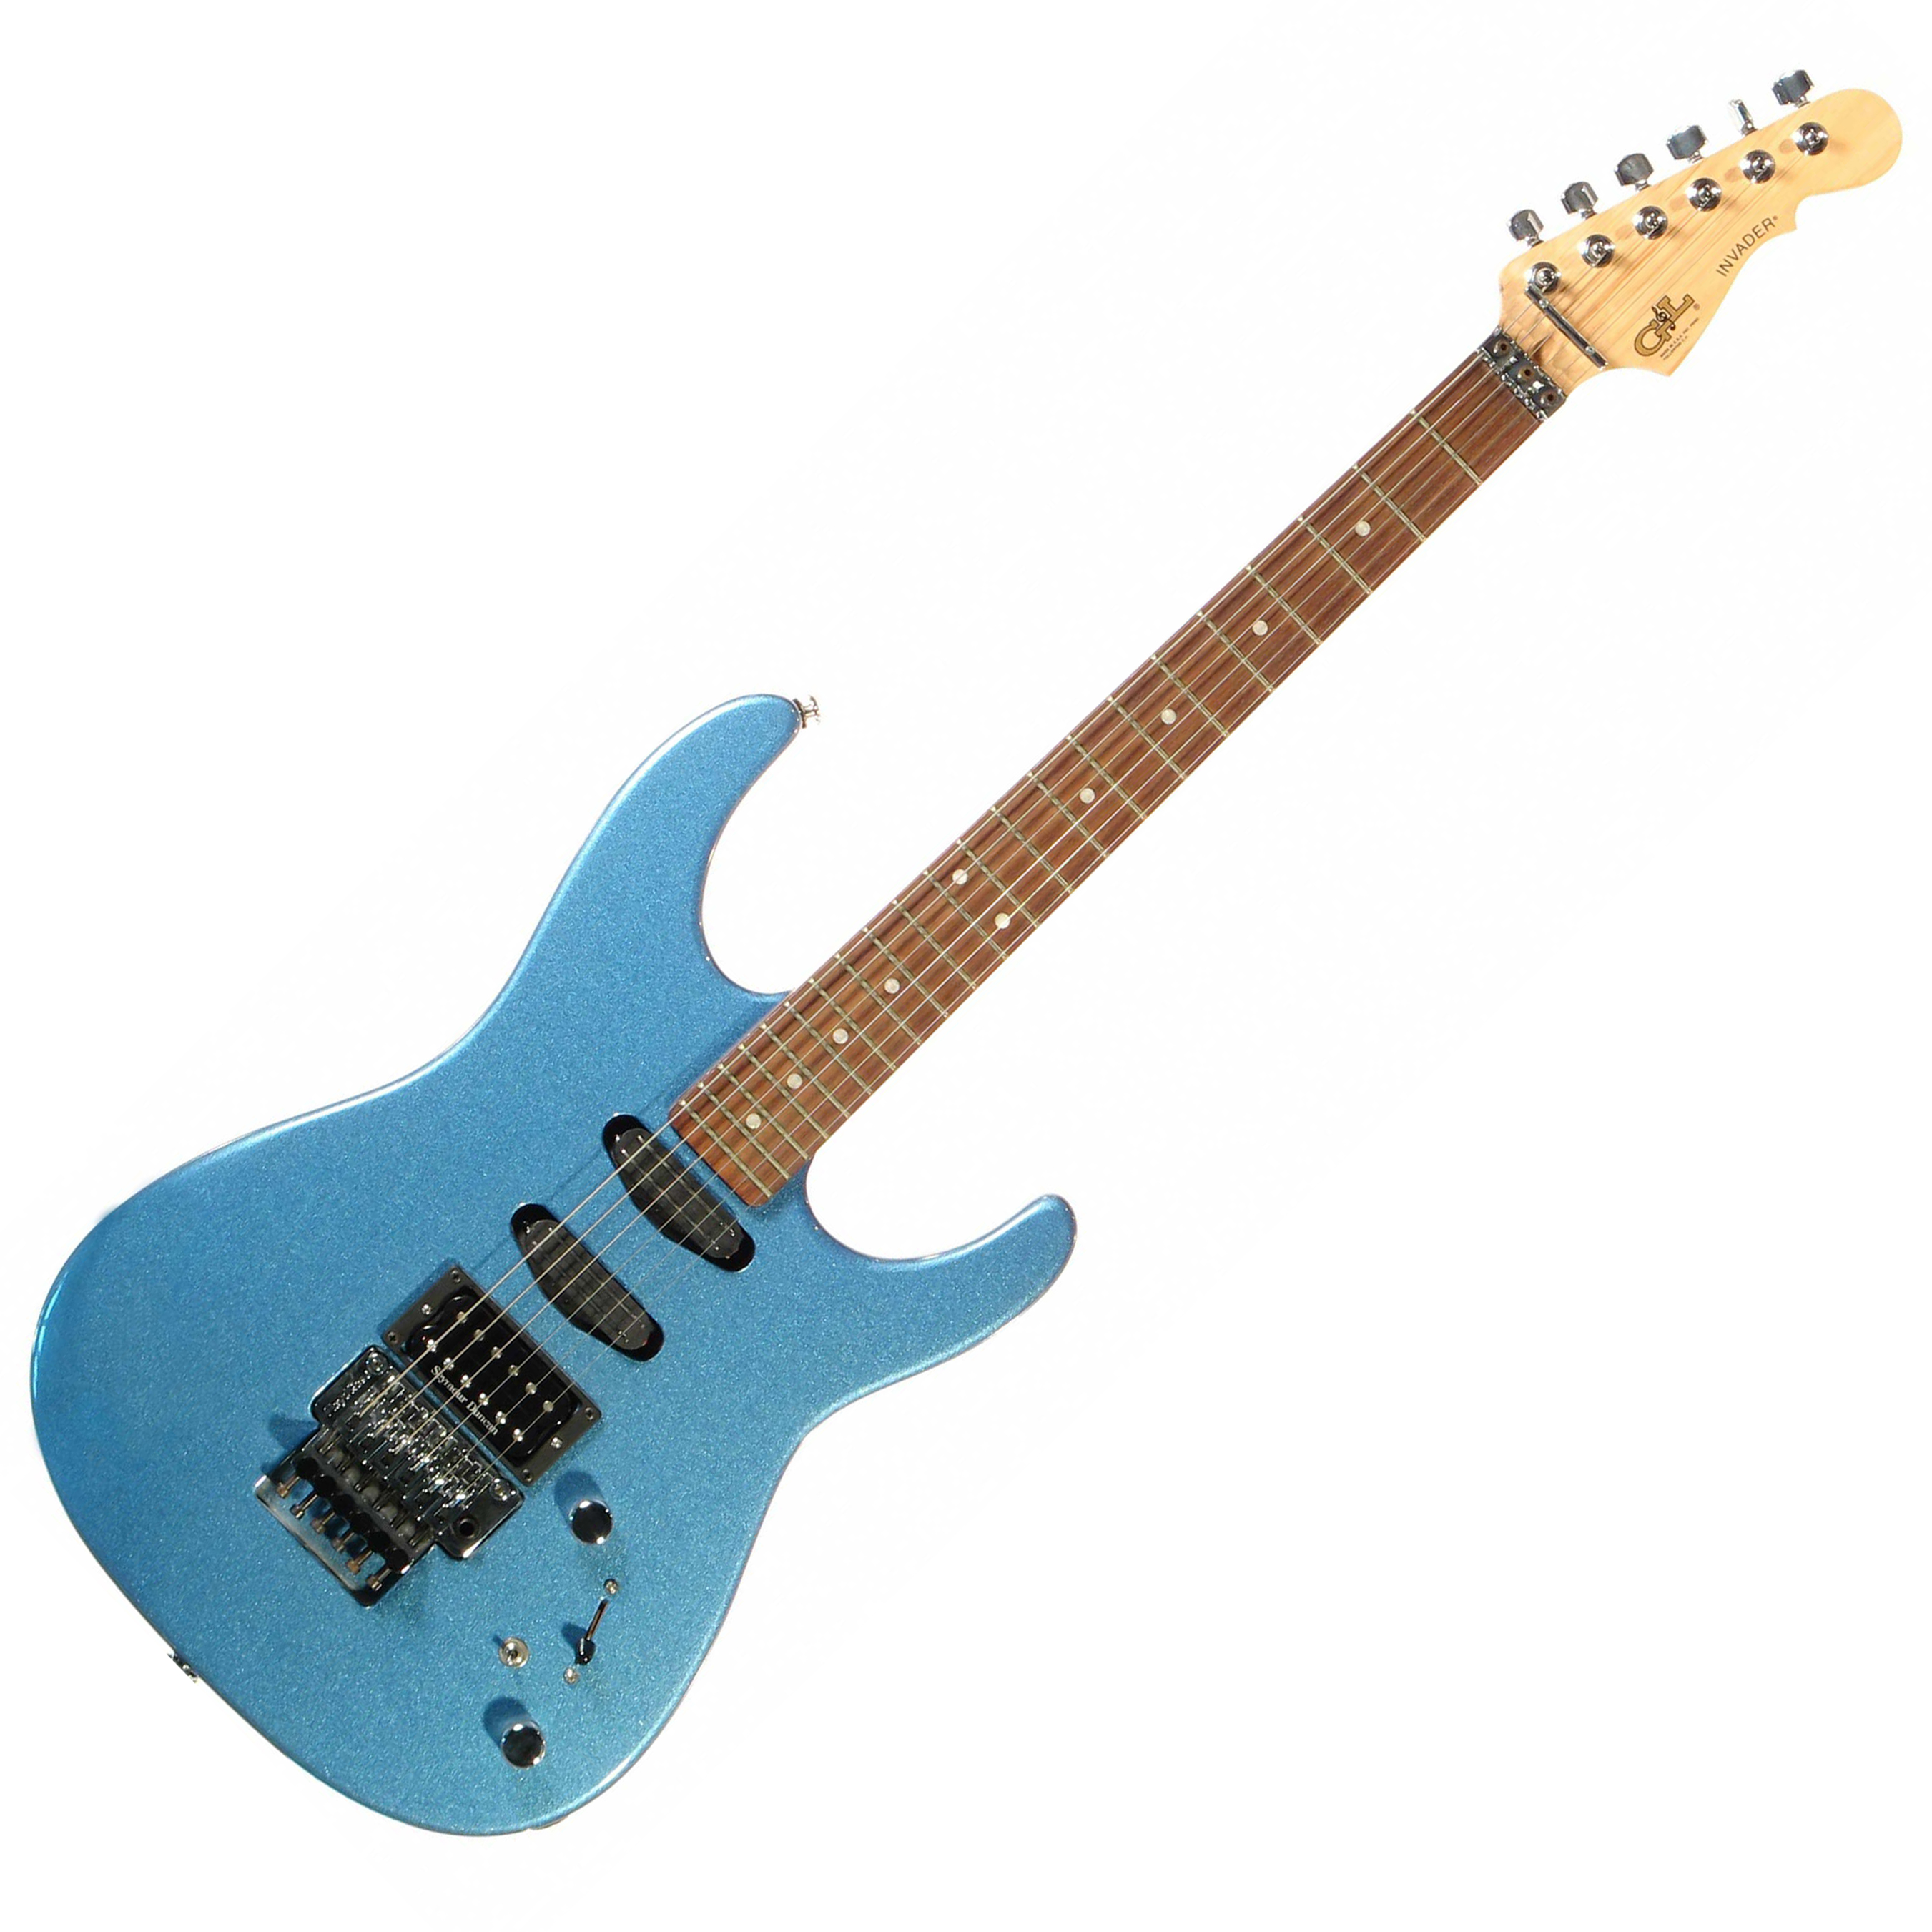 G&L INVADER (Lake Placid Blue, rosewood) (+HOT RAILS). № CLF52384. Made in USA